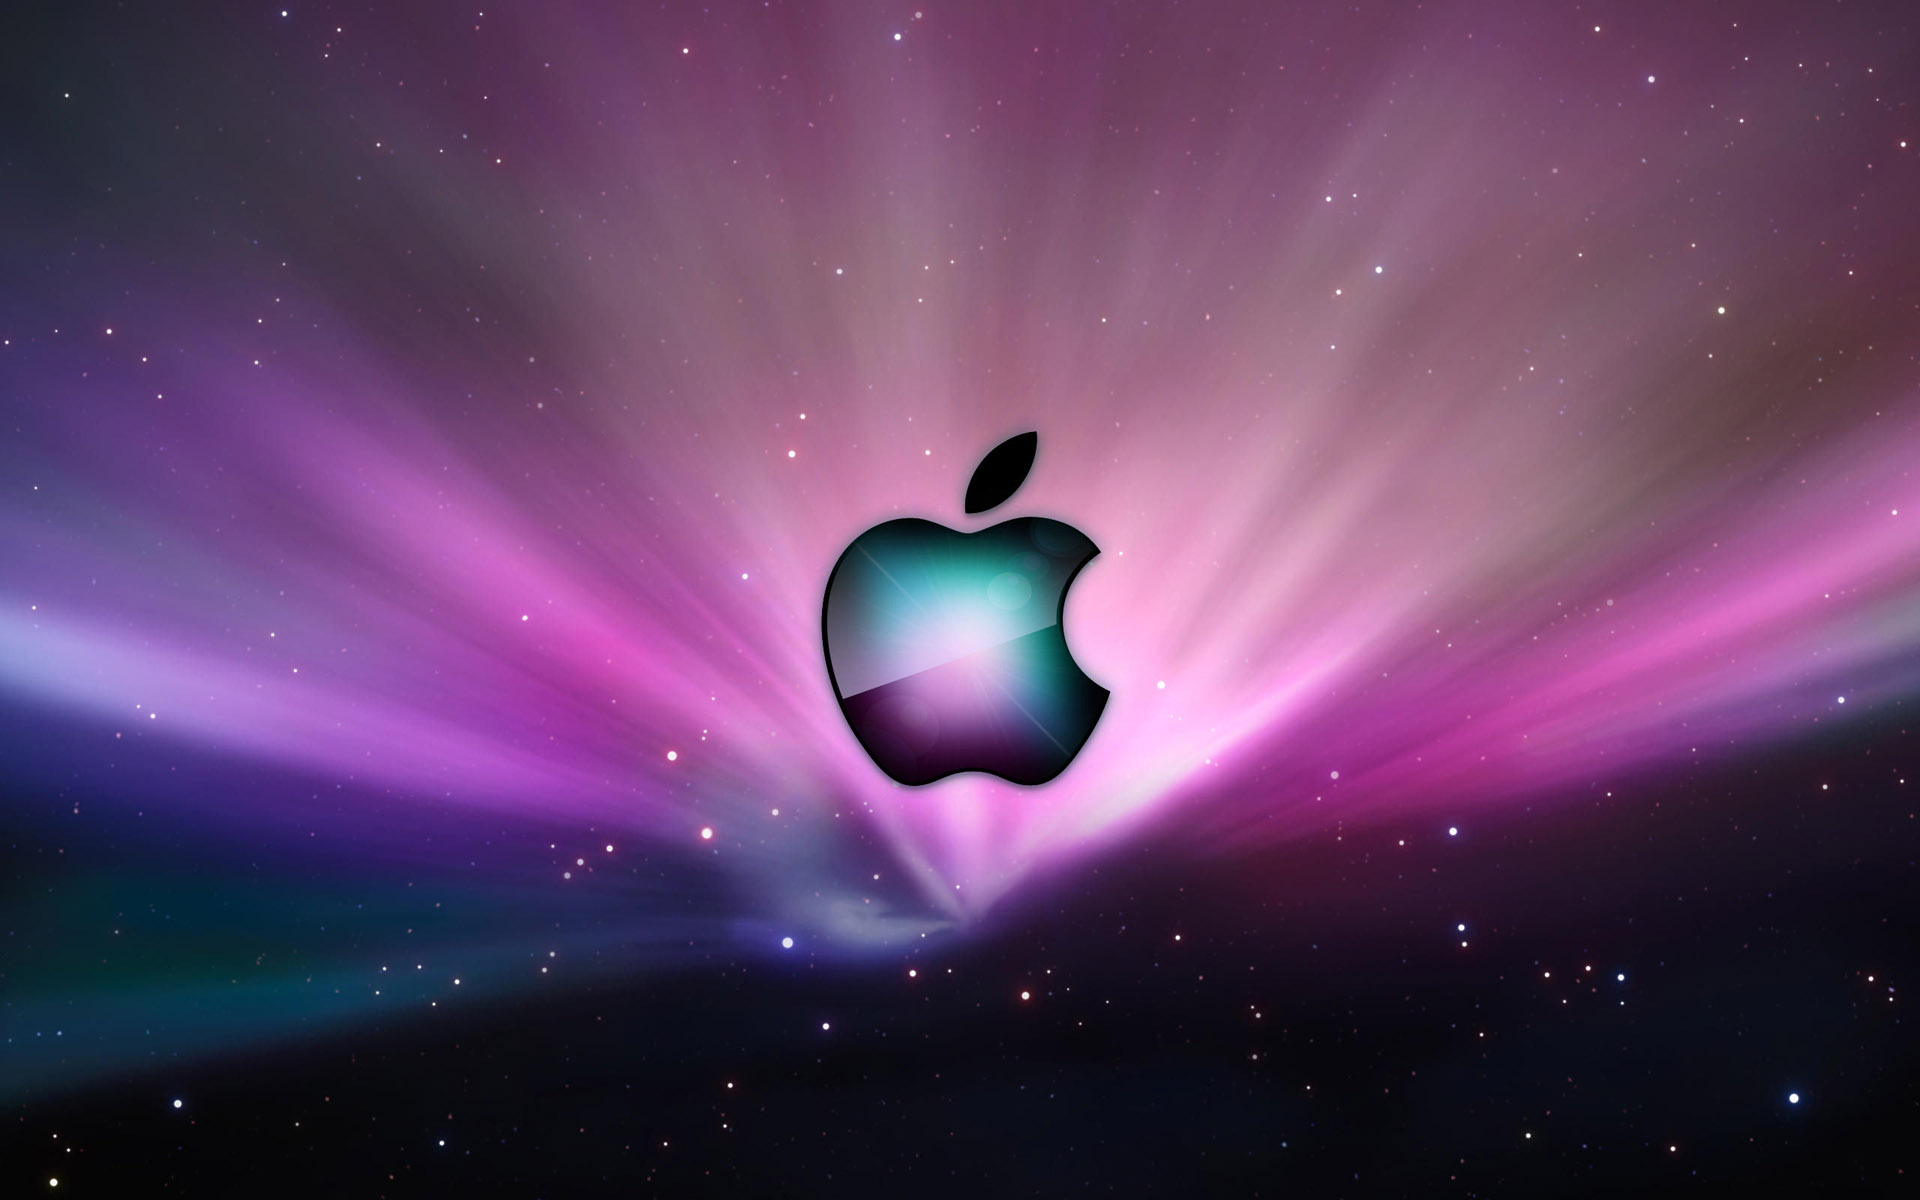 apple full hd wallpaper and background image | 1920x1200 | id:366137